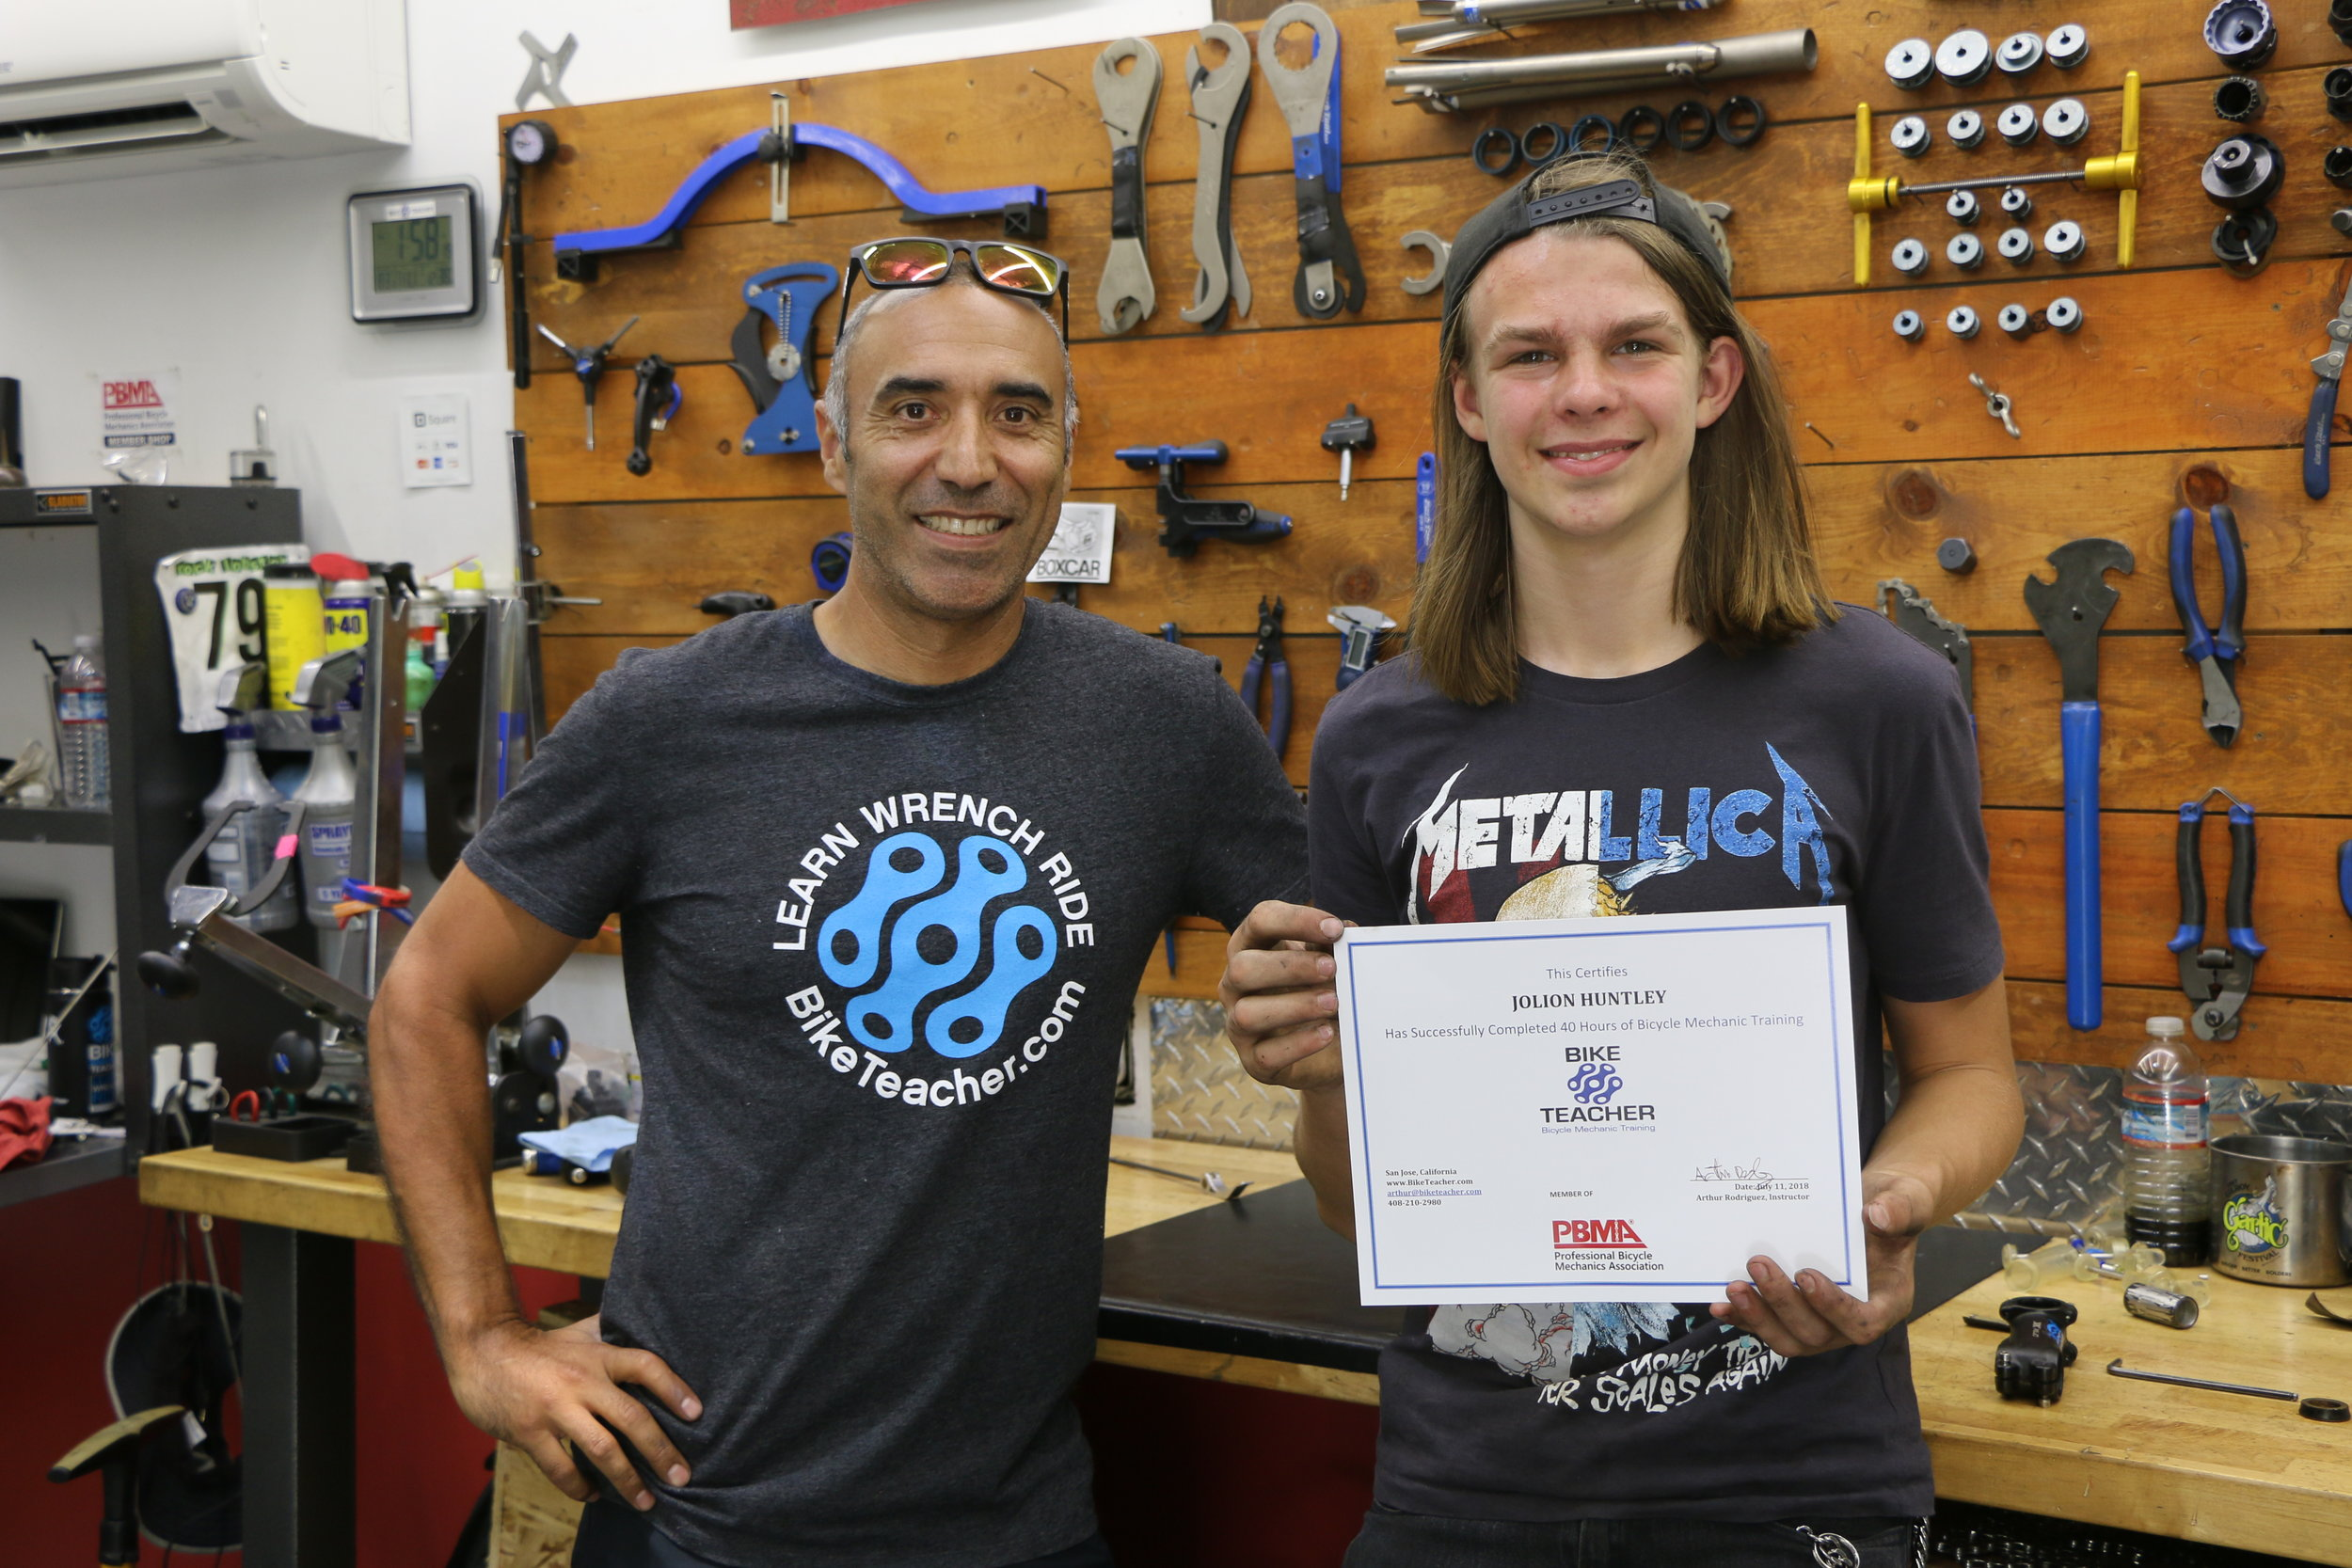 """""""My teen-age son wanted to learn bike mechanic skills beyond what the local REI courses offered. He found Arthur to be a knowledgeable and patient teacher with a strongly hands-on curriculum, and left the 40-hour course with far more skills and confidence than he had before. When I compare the investment in this training course to a summer camp, this wins hand-down. Highly recommended.""""Regards,-Tim - 7/11/18 Menlo Park CA."""